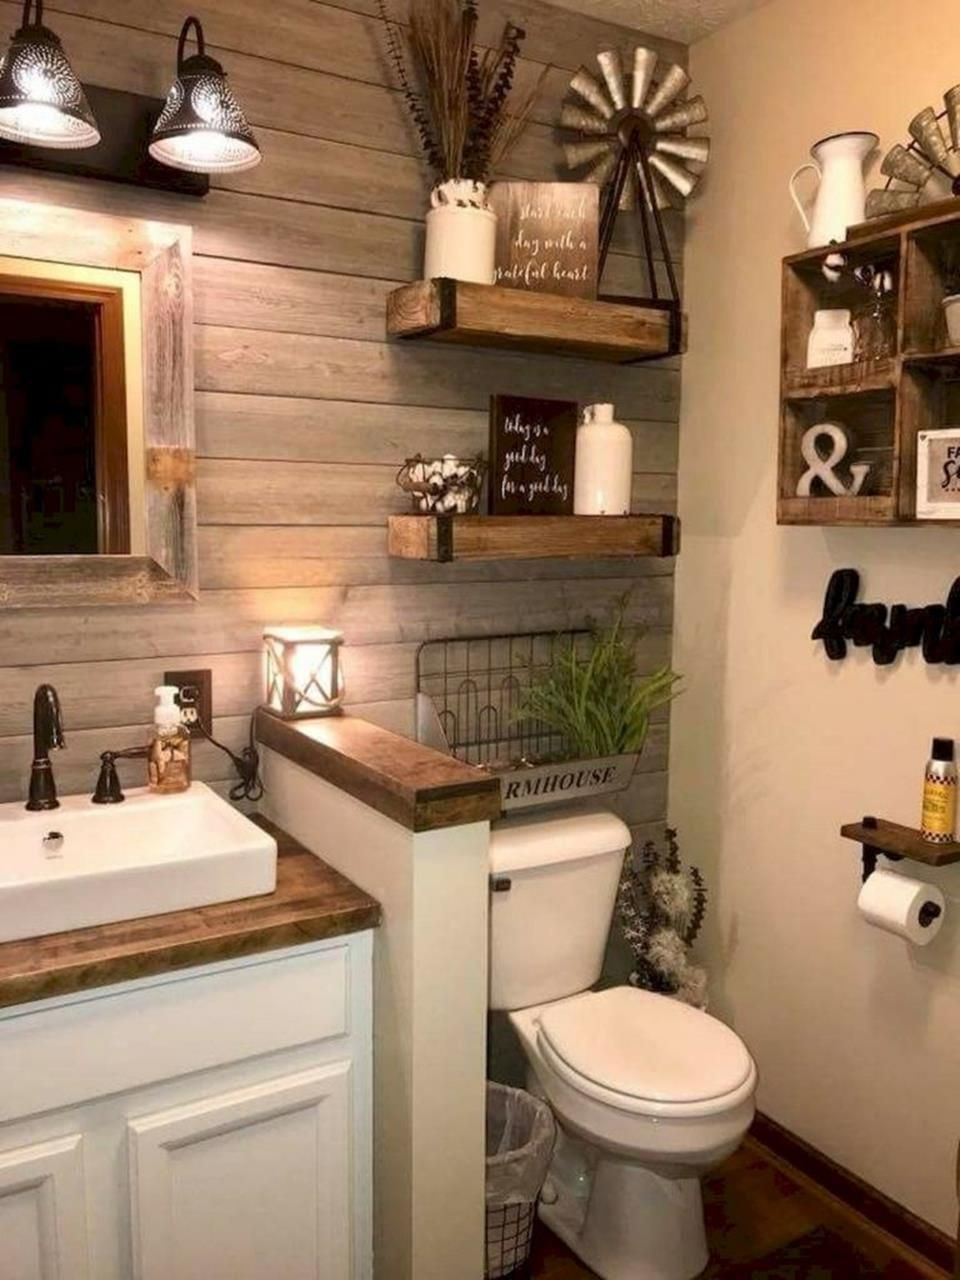 Picture for Bathrooms Decorations Inspirational 50 Stunning Rustic Farmhouse Bathroom Decorating Ideas 9